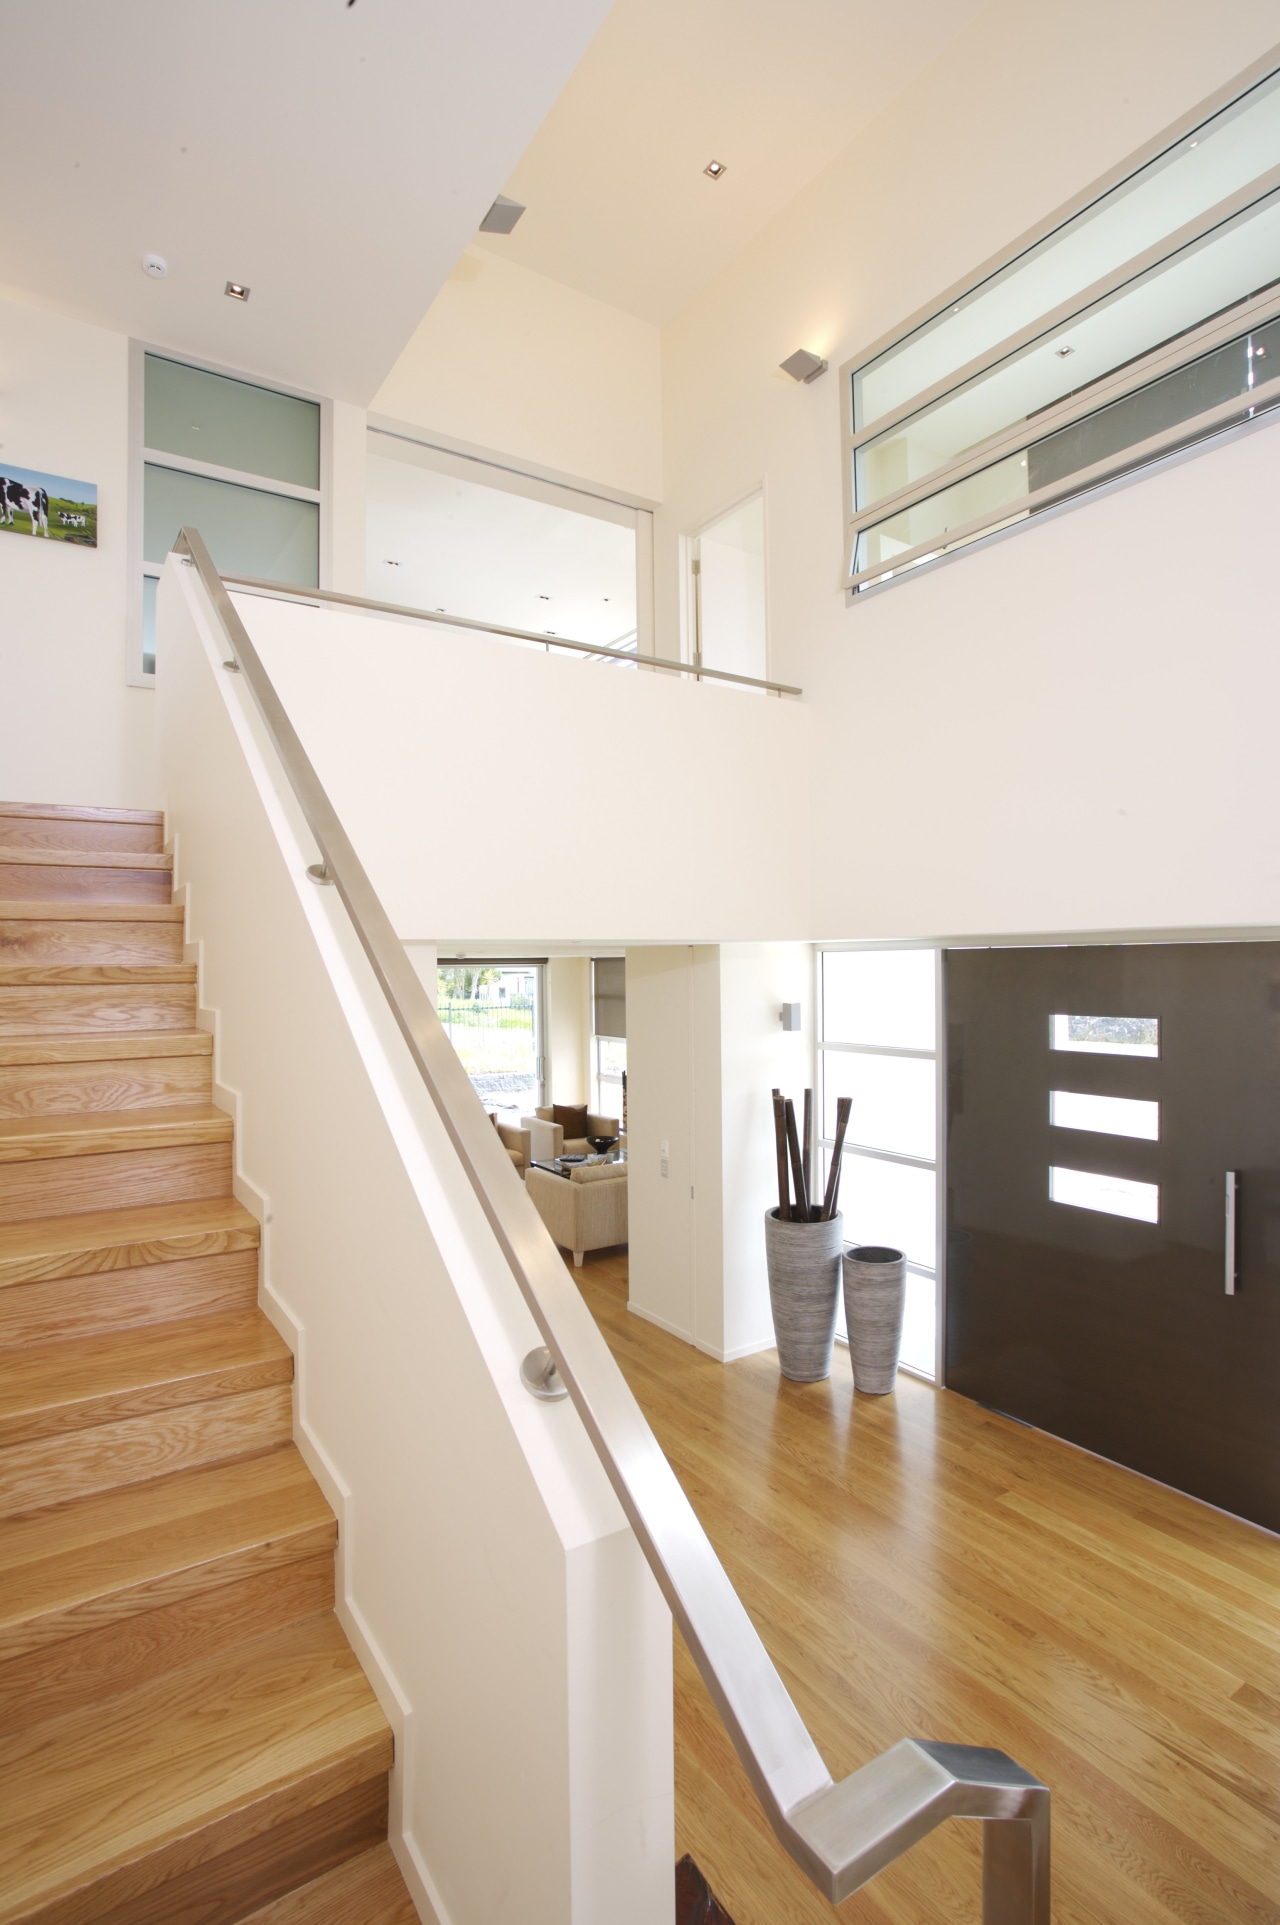 interior stairs view of a new home in architecture, ceiling, daylighting, floor, flooring, handrail, hardwood, home, house, interior design, laminate flooring, property, real estate, stairs, wall, window, wood, wood flooring, white